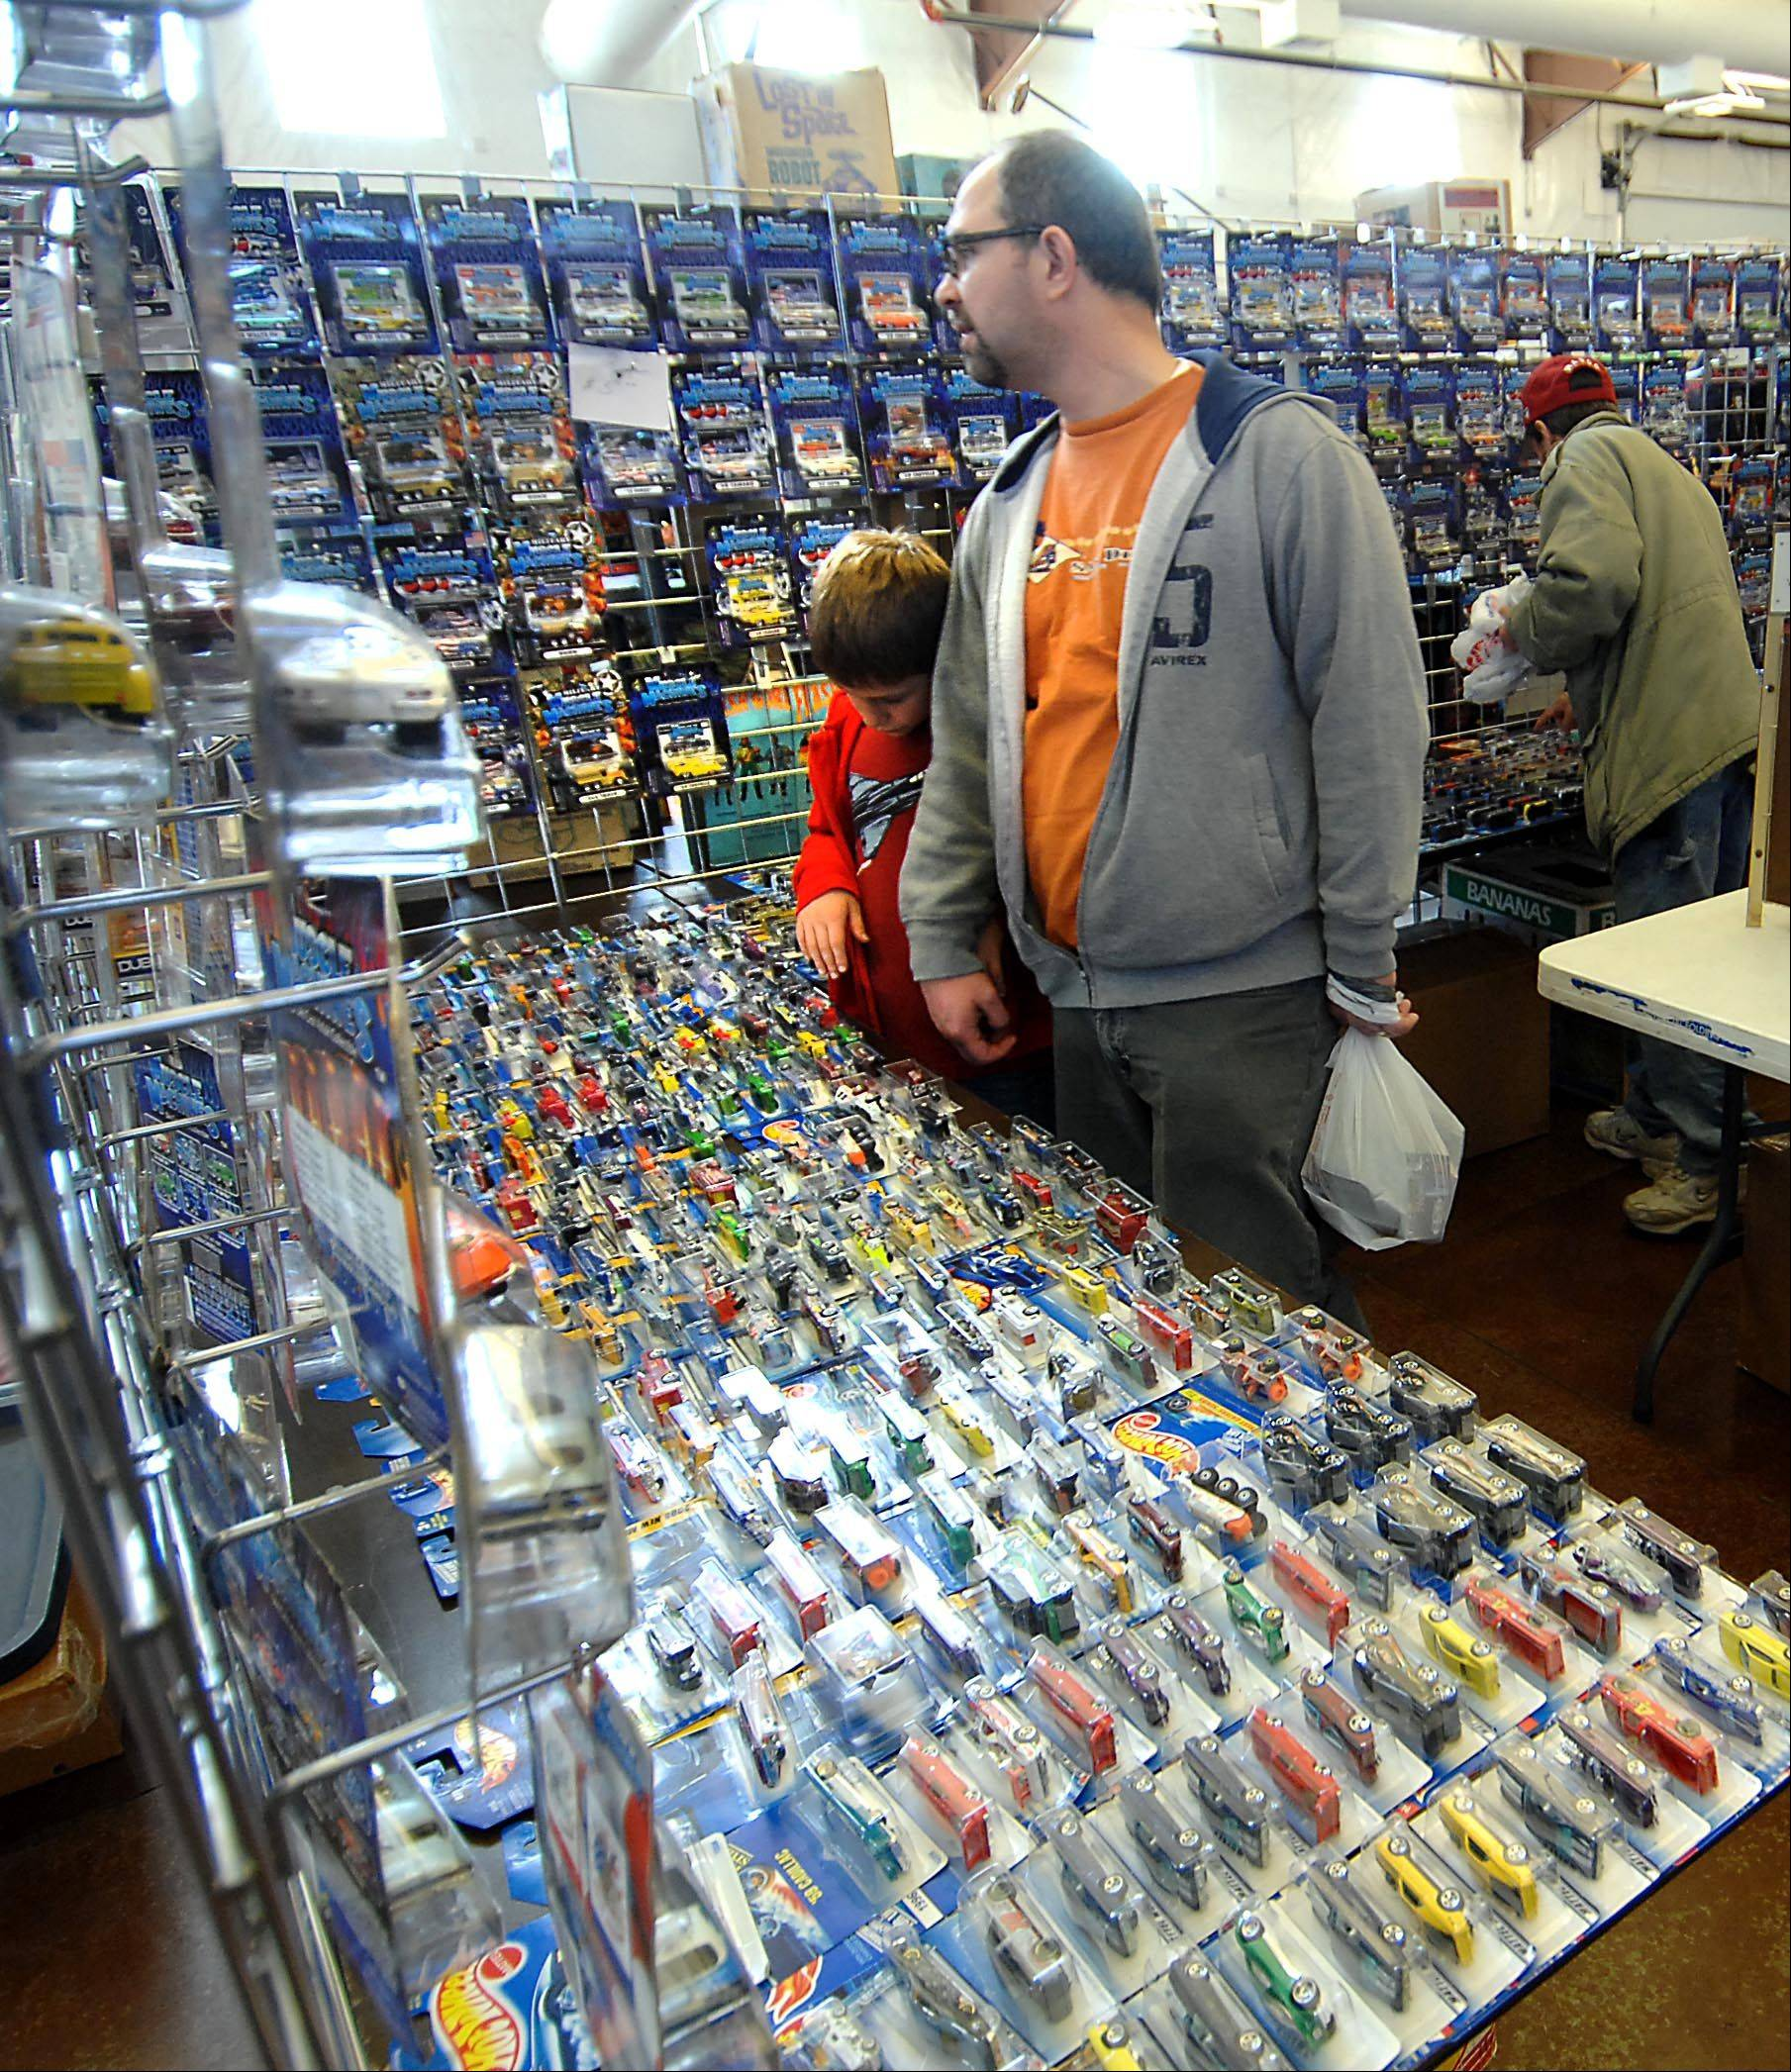 Noah Ivicic, 10, and his dad Chris, of Mokena, look over a table of Hot Wheels Sunday at the Chicago Toy Show at the Kane County Fairgrounds in St. Charles. Four buildings were filled with collectible toys for sale.